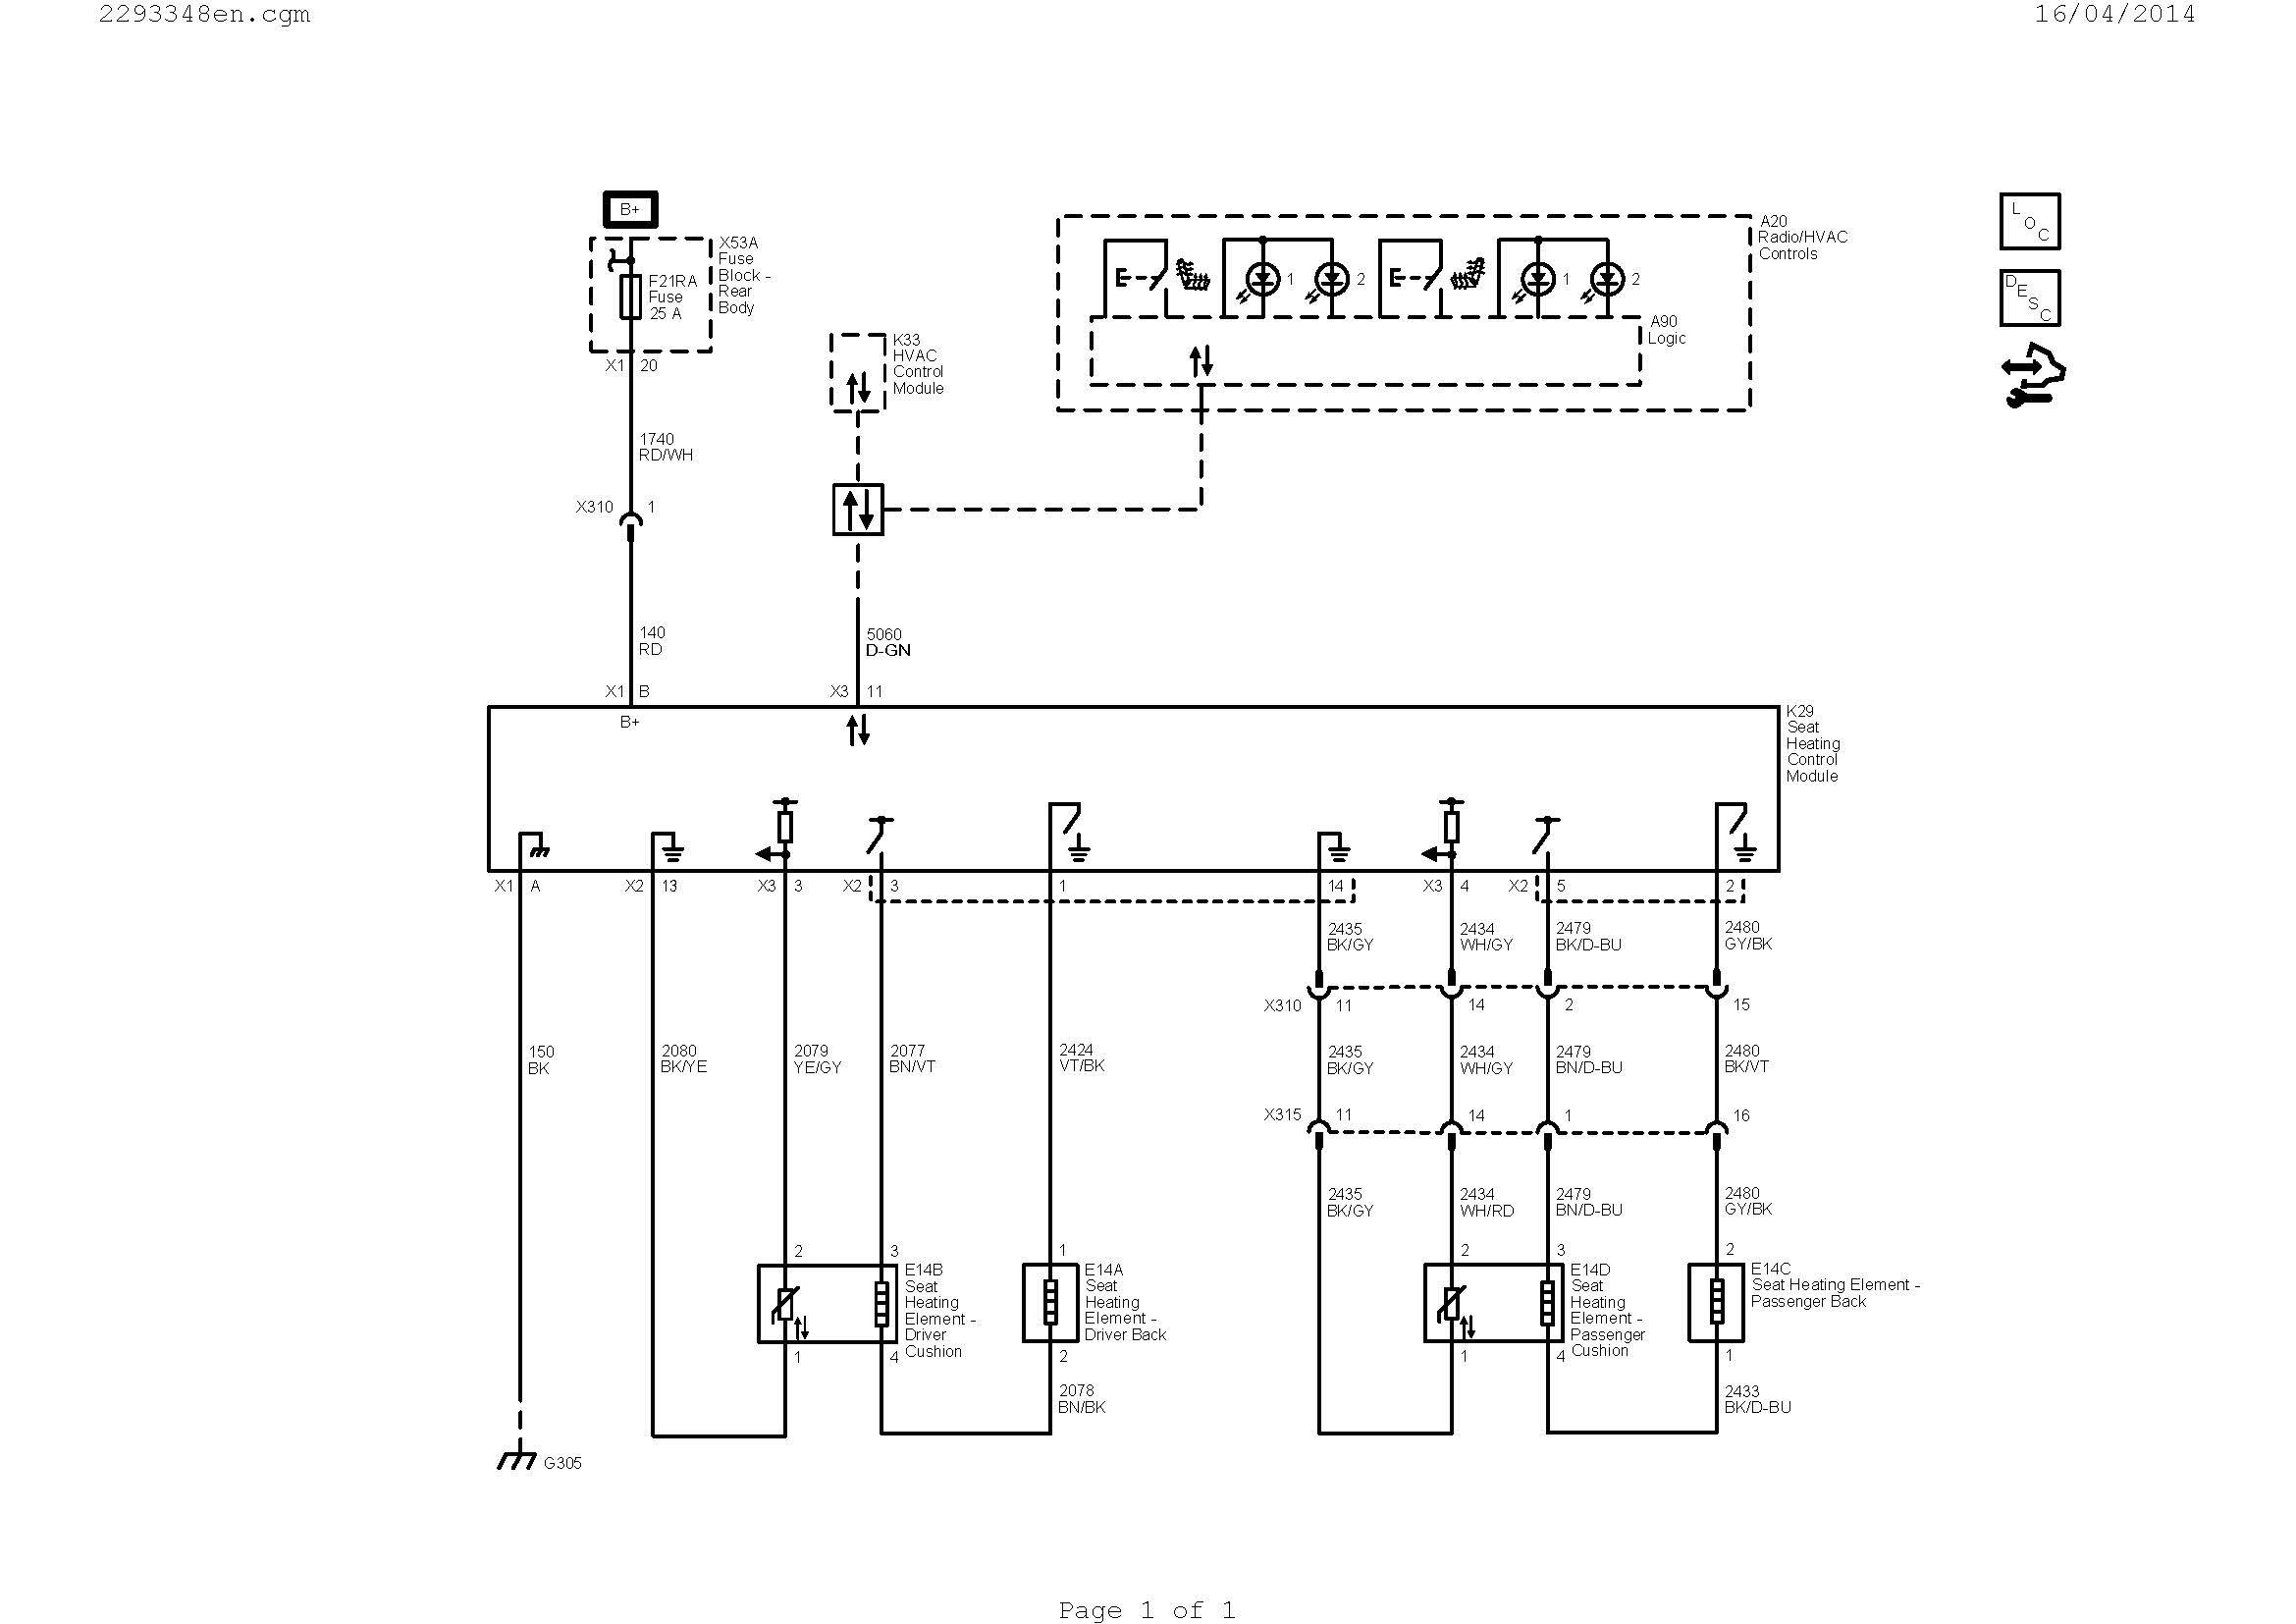 Furnace Wiring Diagram - Wiring Diagram Schematic New Wiring Diagram Guitar Fresh Hvac Diagram Best Hvac Diagram 0d 4d